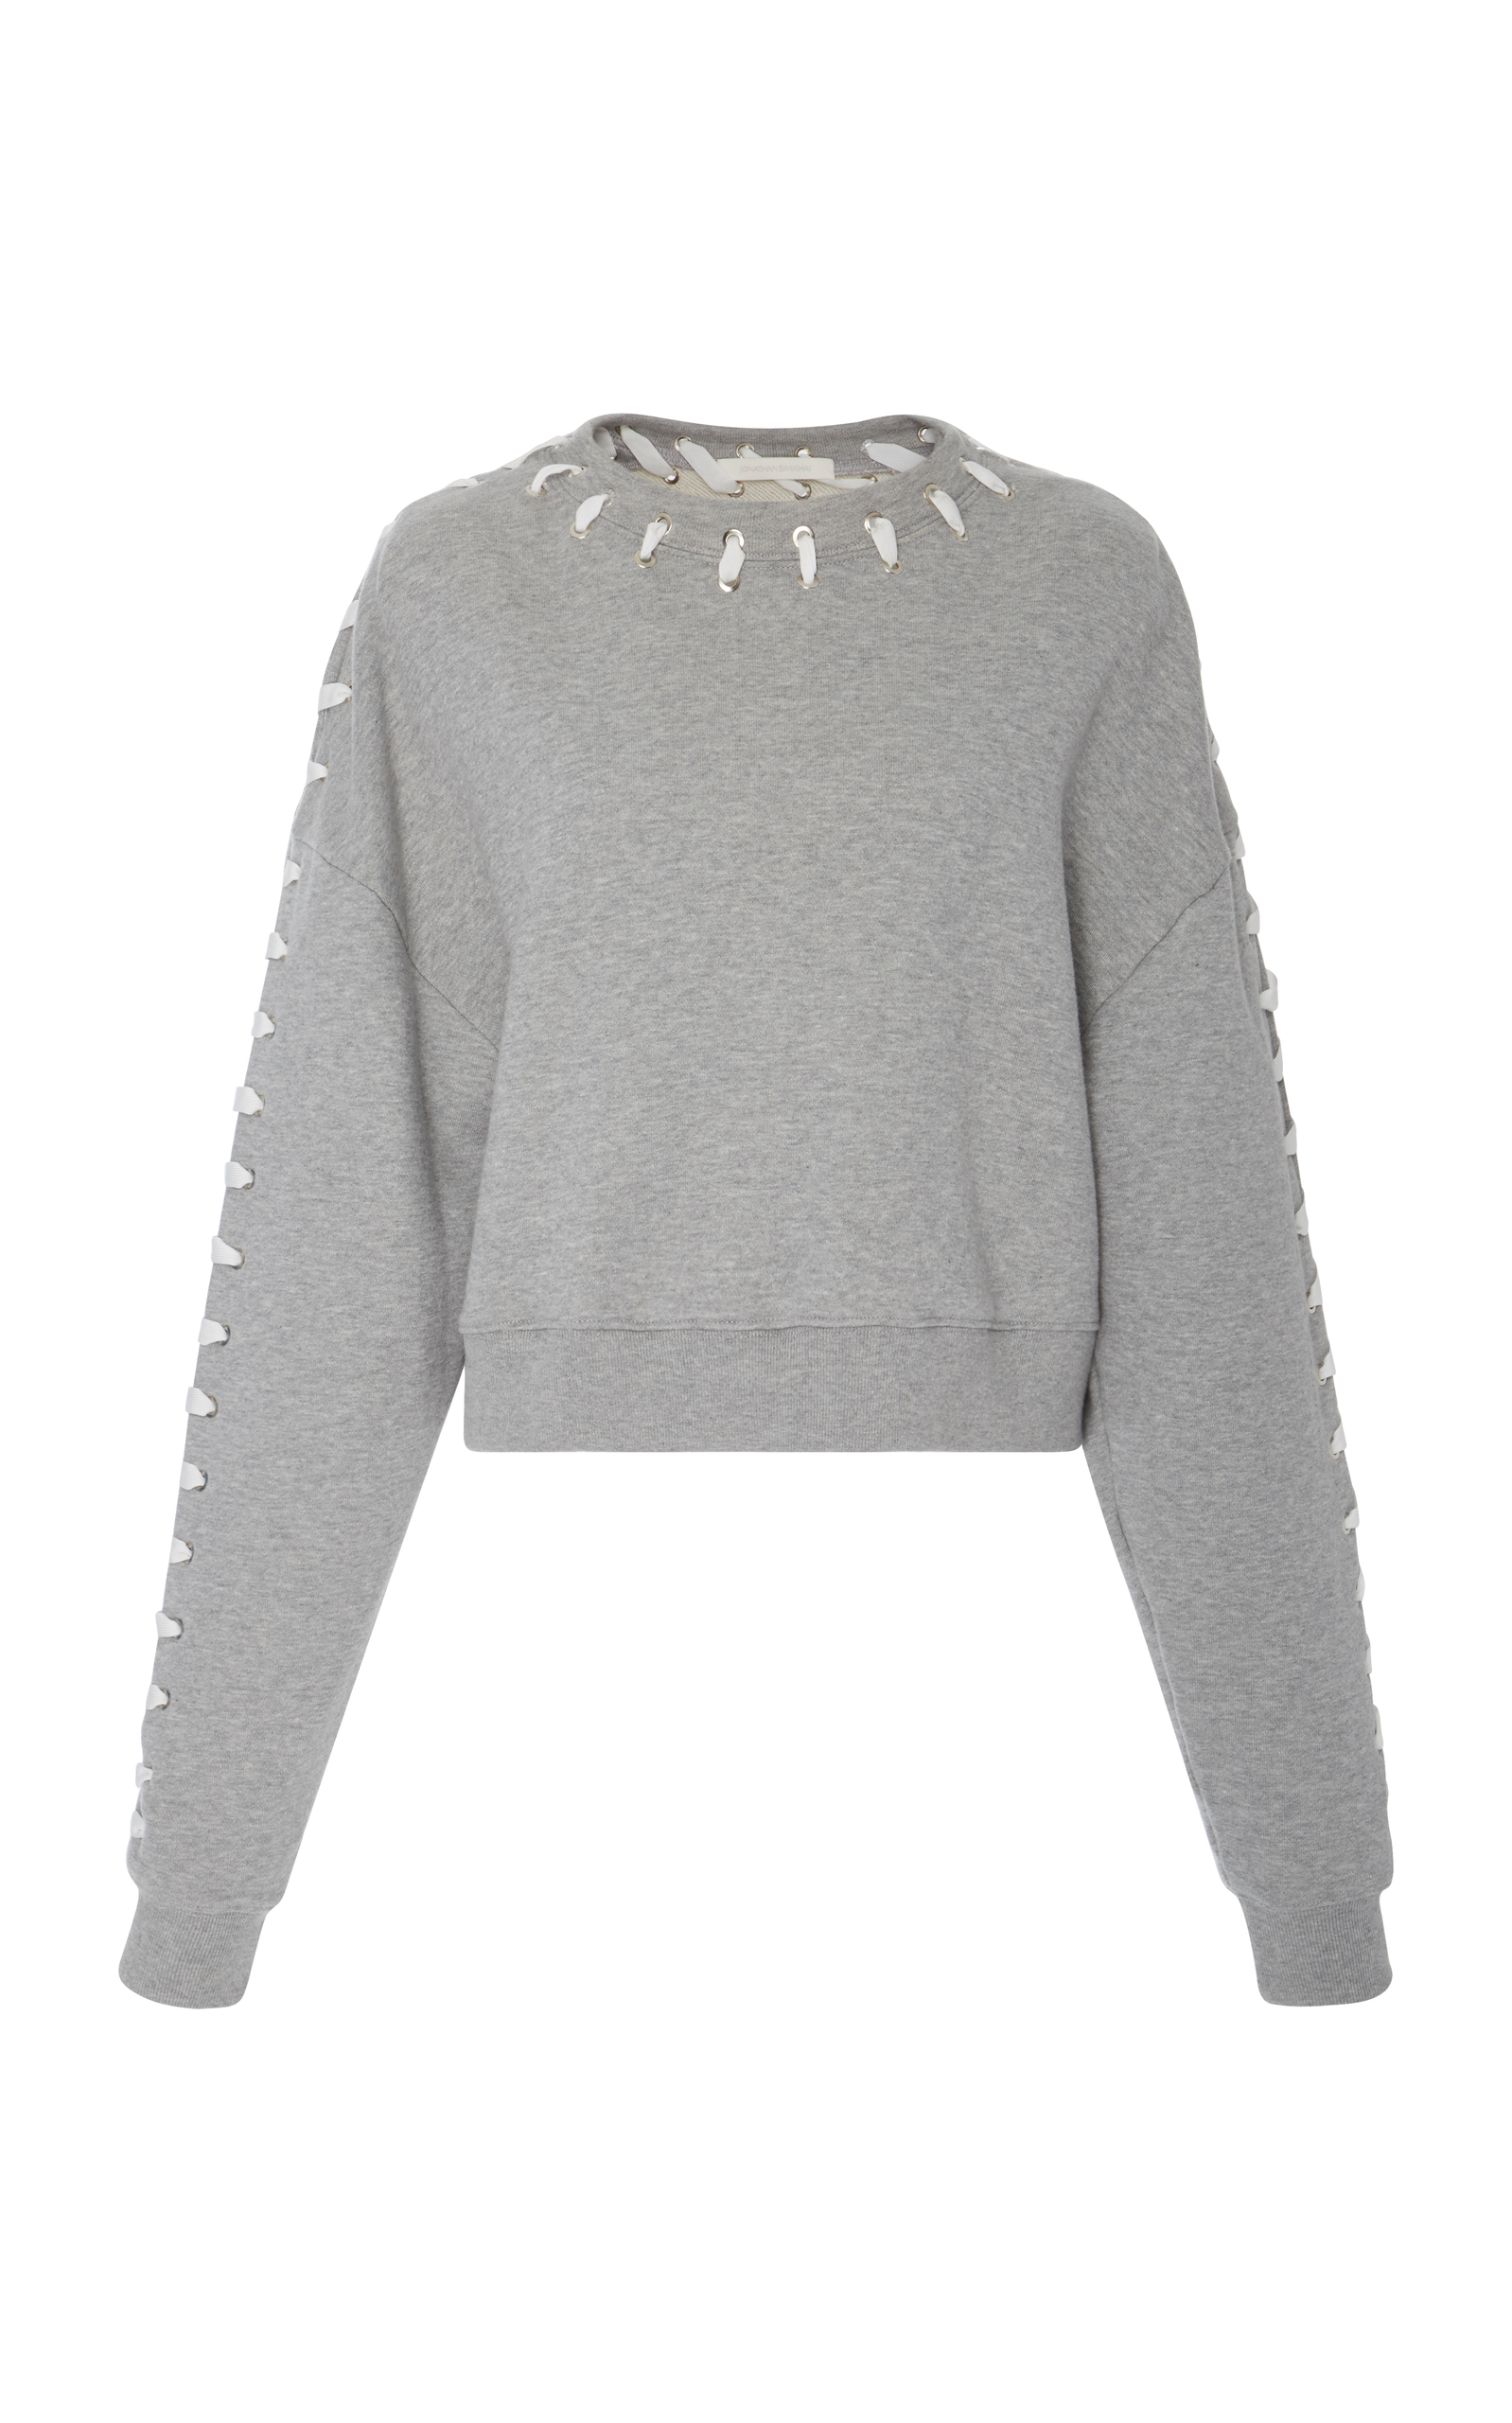 Loopback Whipstitch Cropped Cotton Sweater in Grey